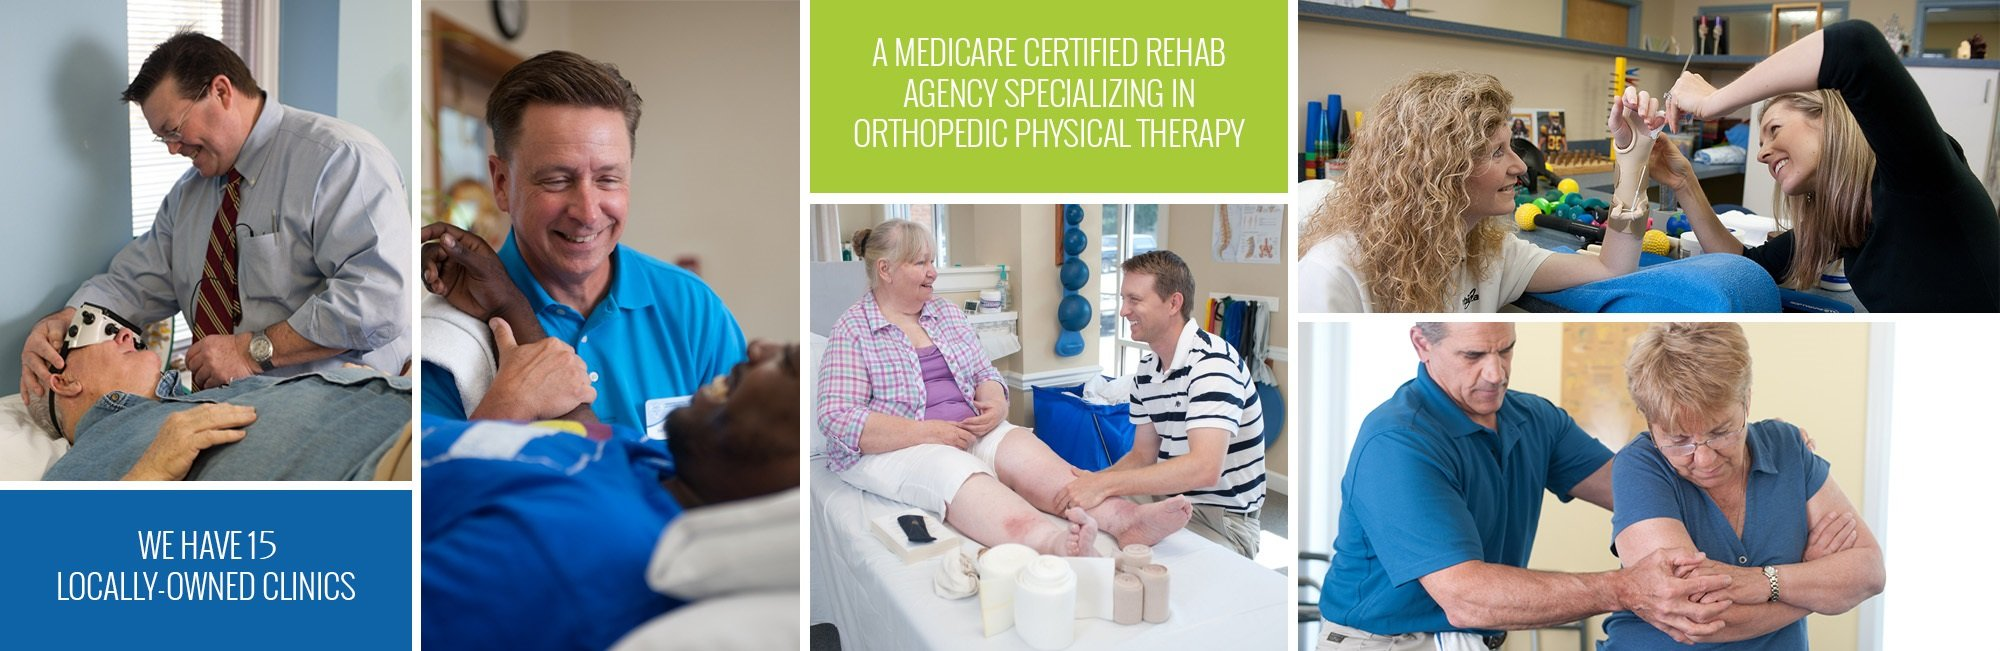 Multi paneled image showing physical therapist assisting patients